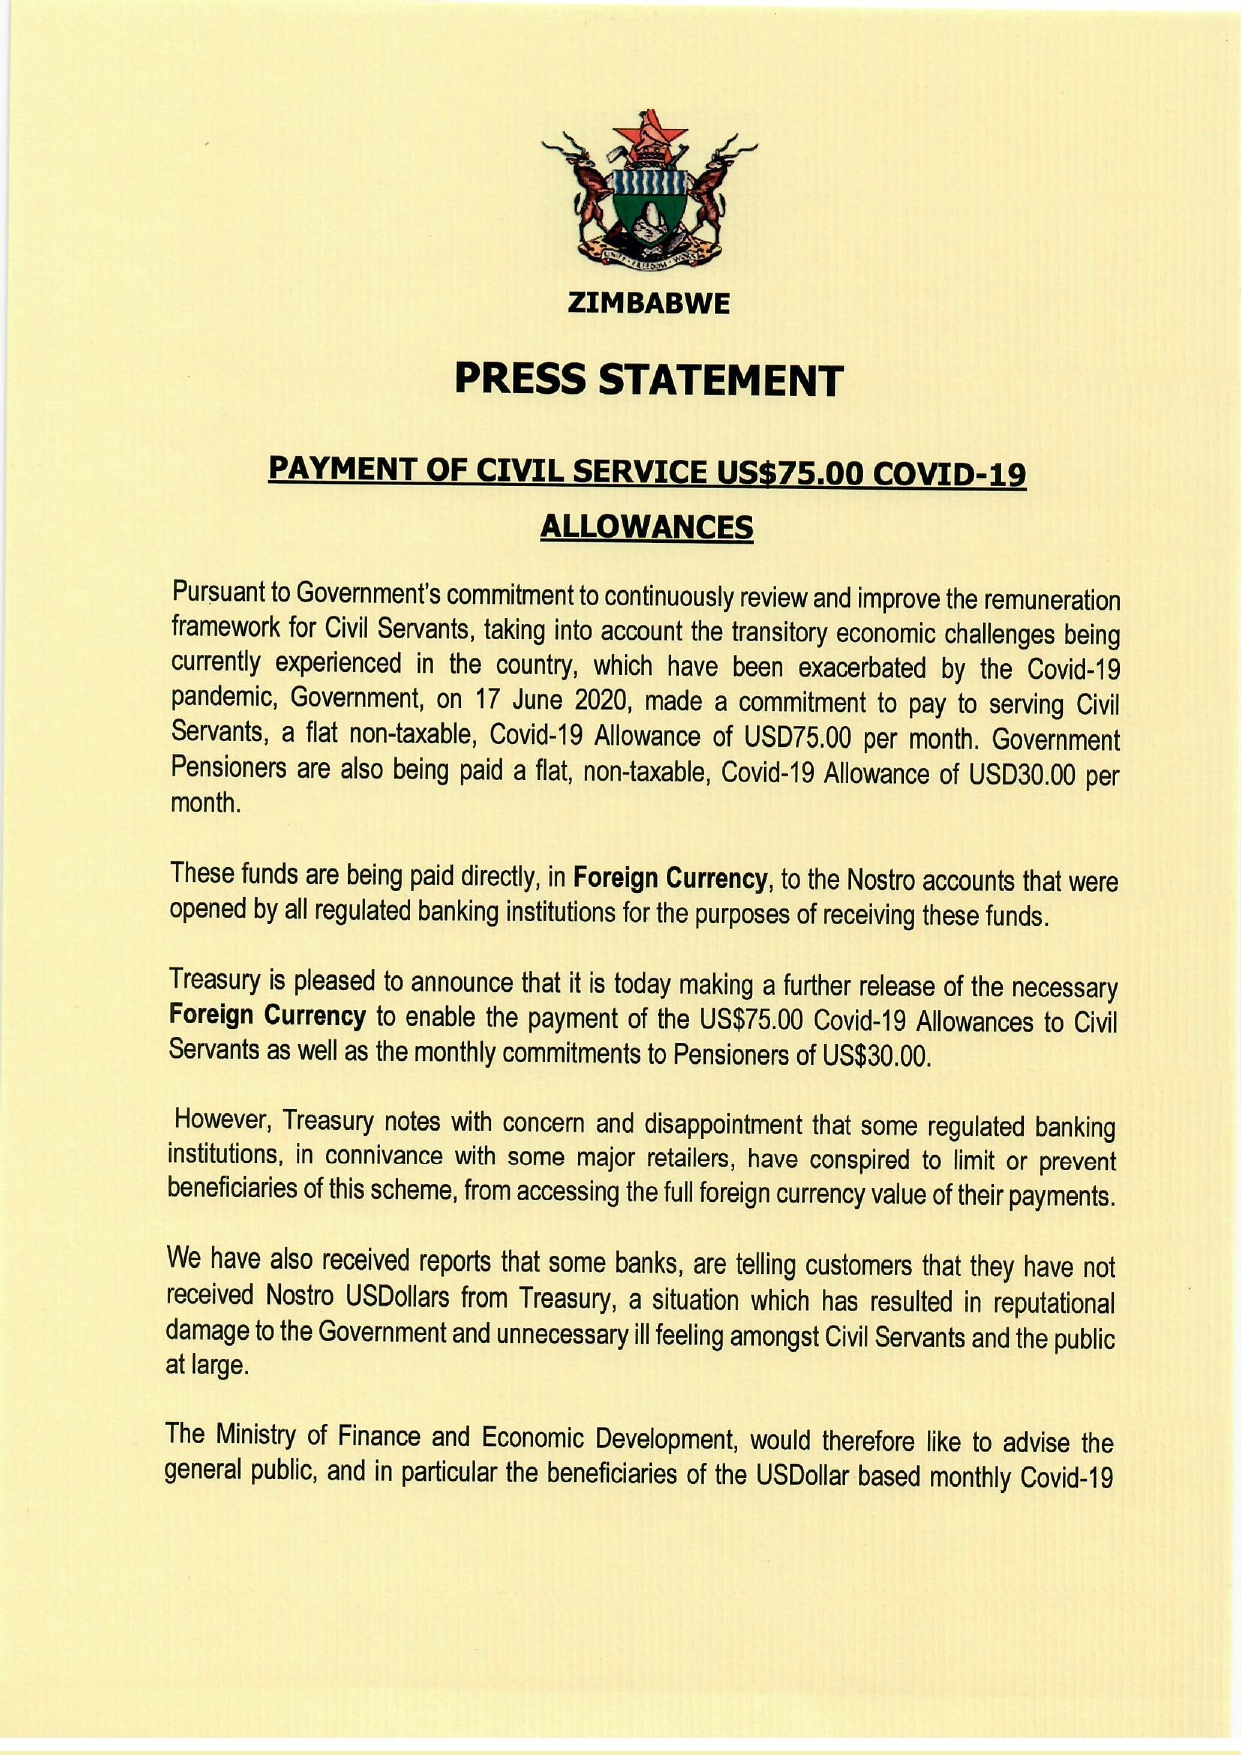 Payment Of US$75 Covid-19 Allowances For Civil Servants